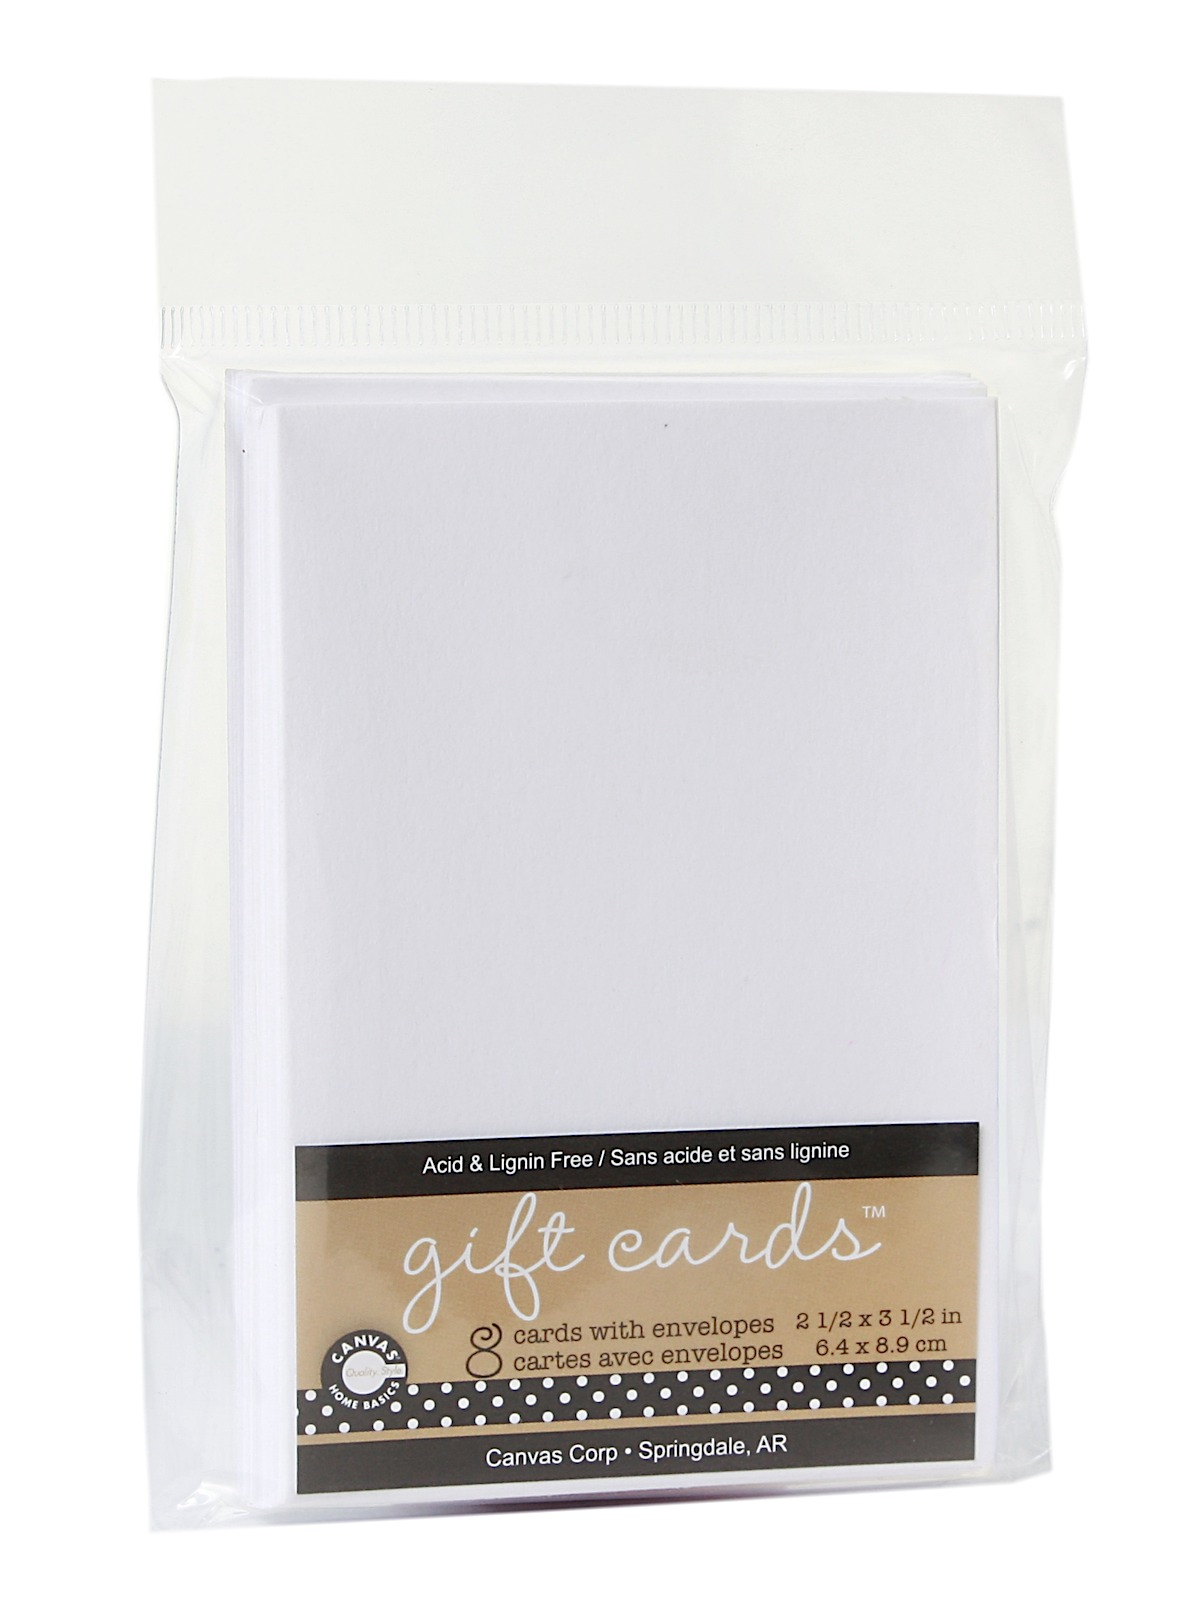 Packaged Cards And Envelopes Gift Cards With Envelopes White 2 1 2 In. X 3 1 2 In. Pack Of 8